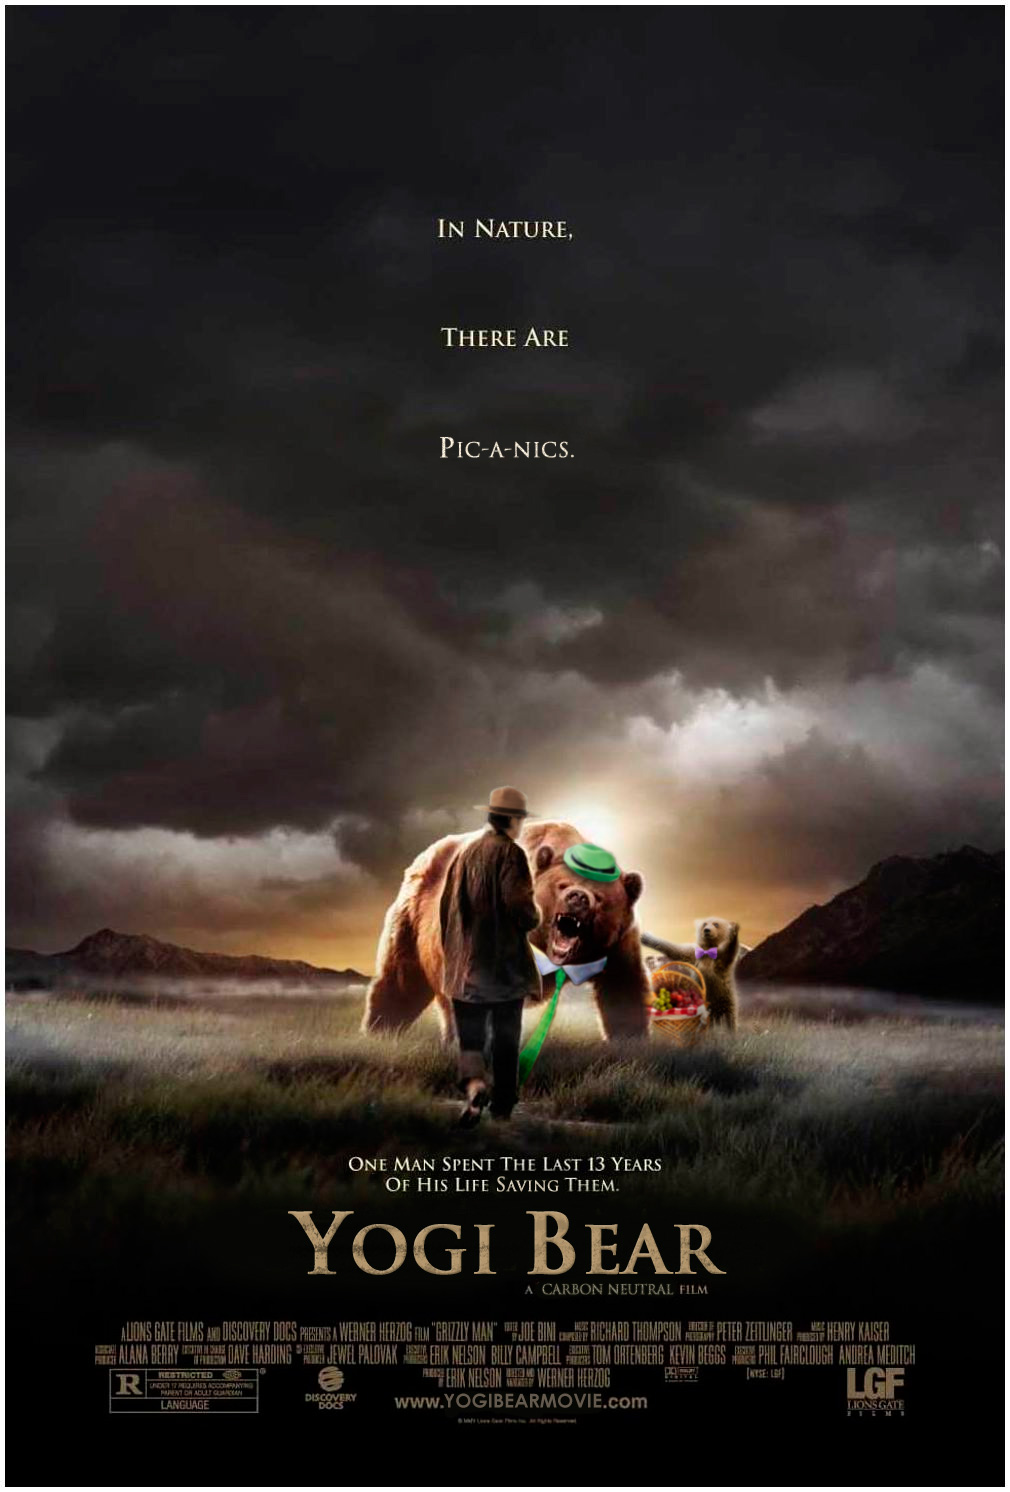 Free Hollywood Movie Pictures,Photos,Images,Wallpapers,Trailers Hd Yogi Bear Movie Pictures, Hd -5151